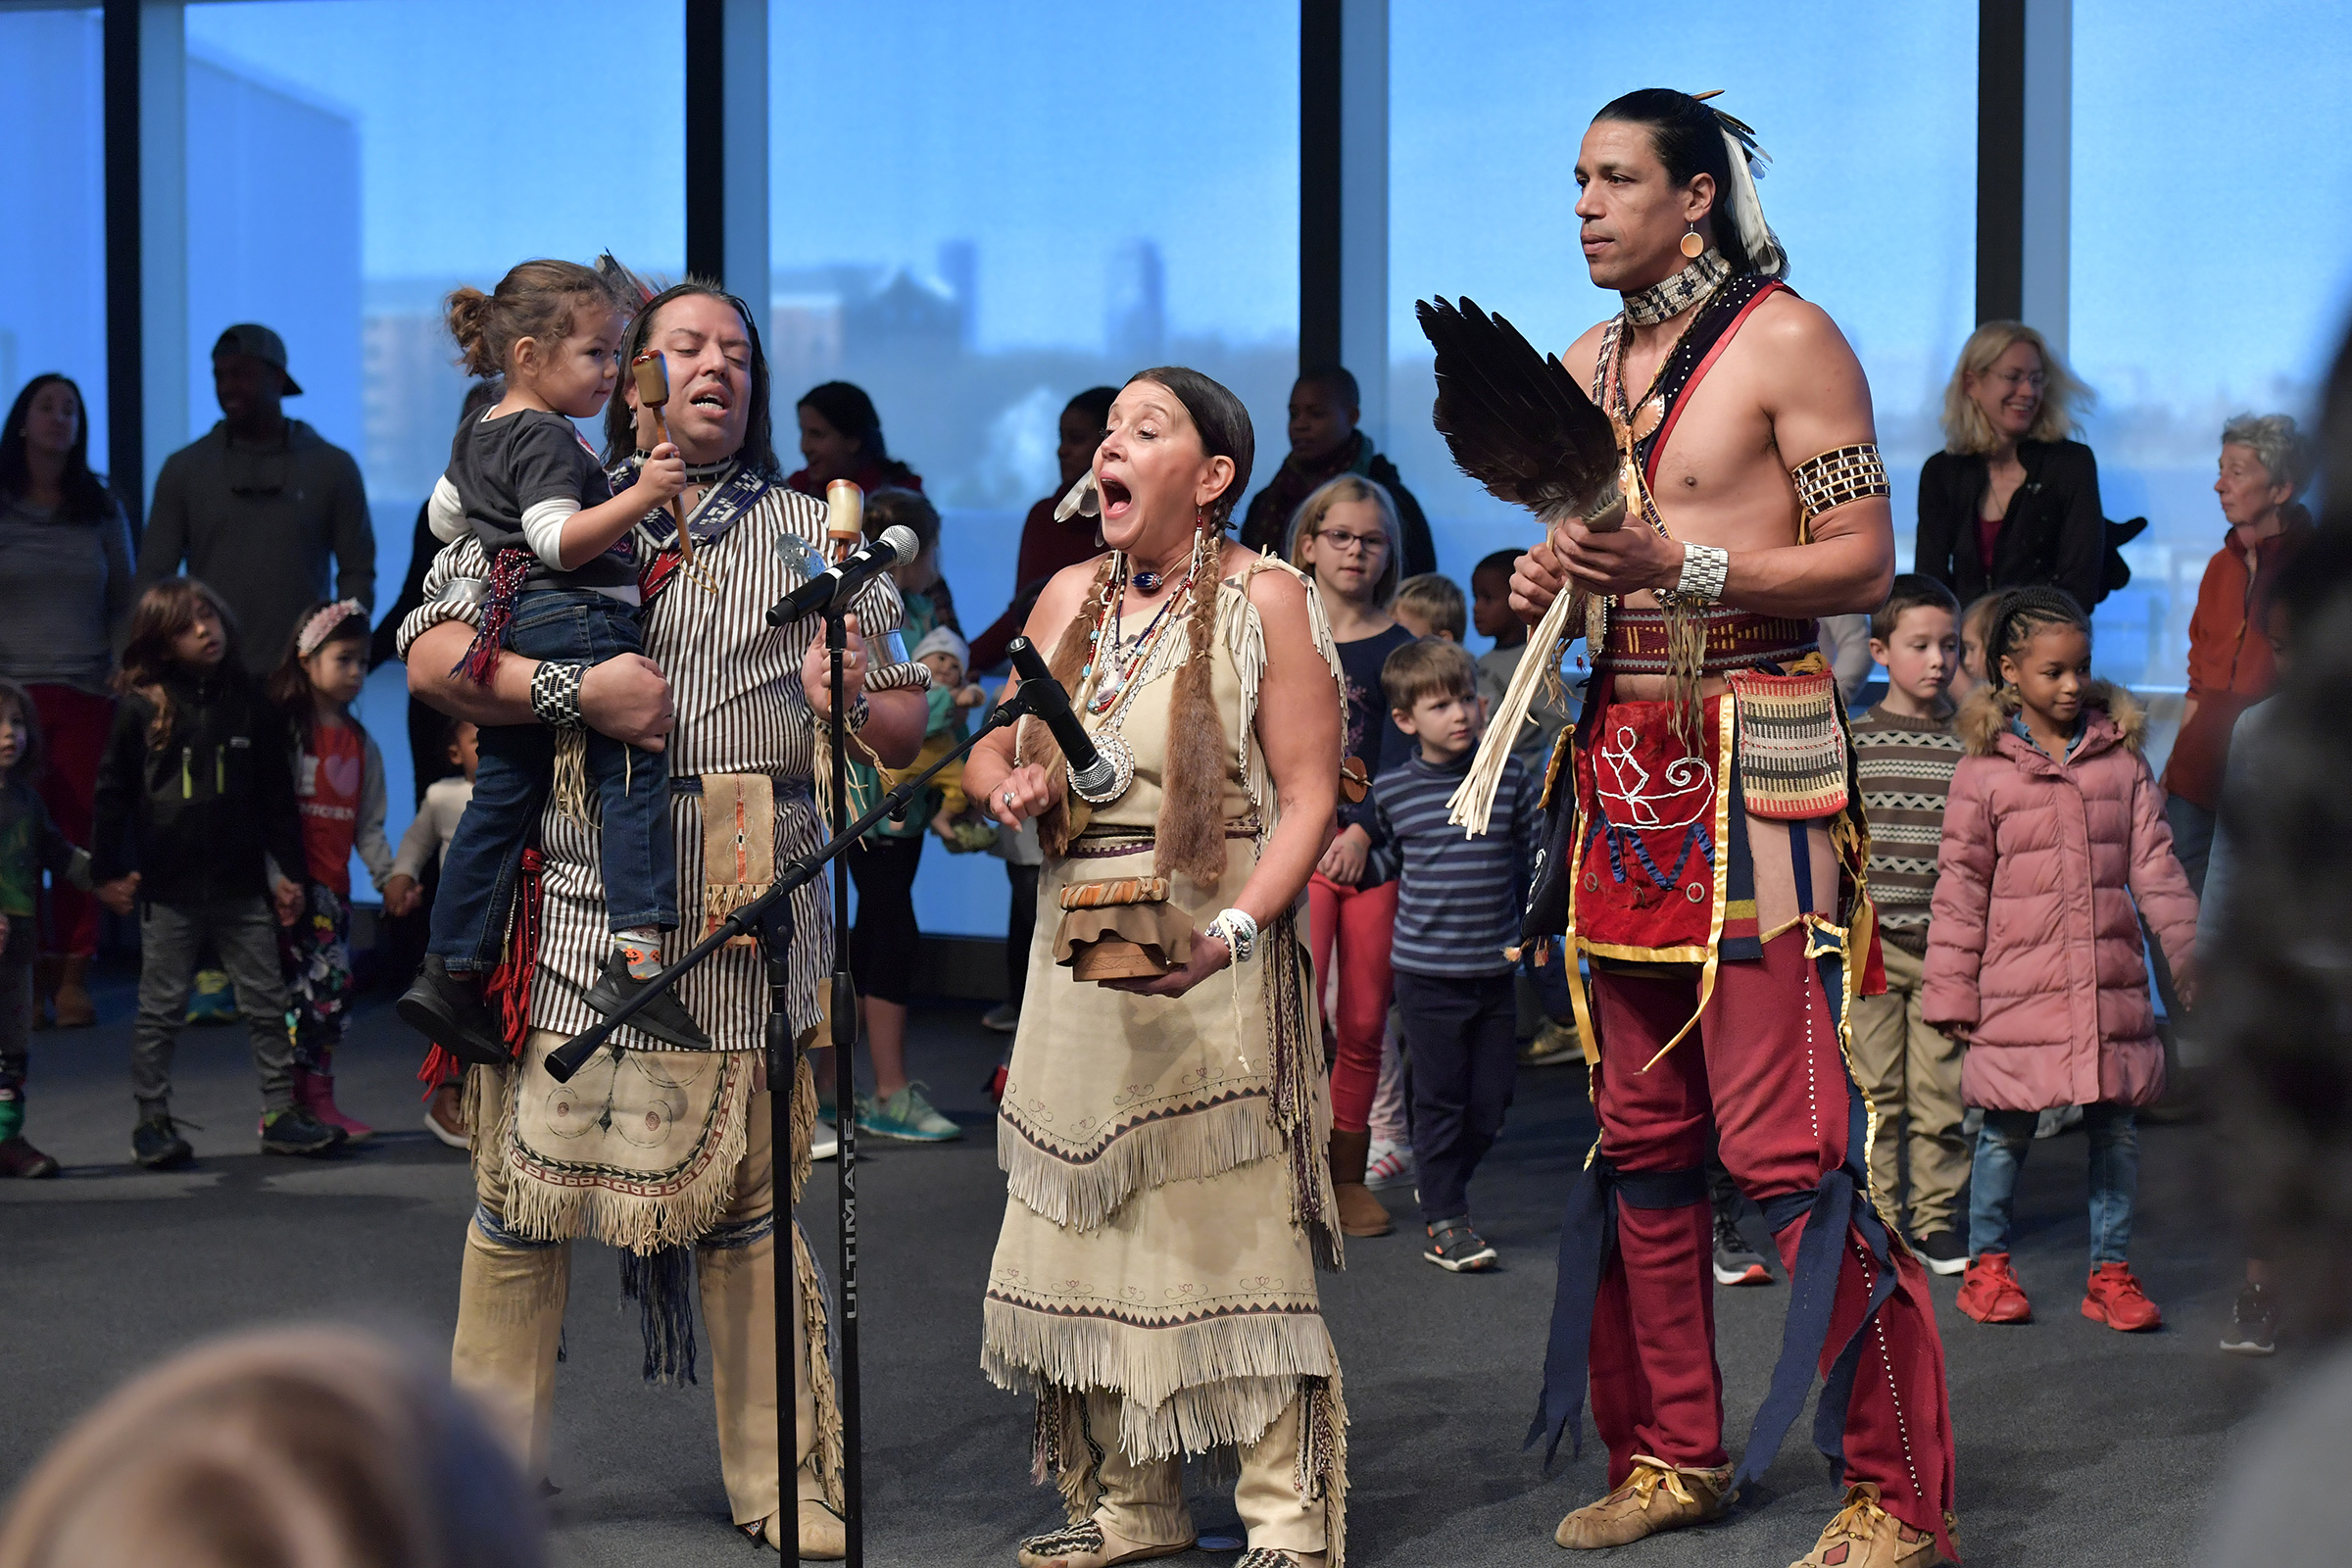 The Wampanoag Nation Singers and Dancers, including Jonathan James-Perry (L) and Kitty Hendricks Miller (C) perform at the John F. Kennedy Presidential Library and Museum on Nov. 29, 2019 in Boston to commemorate Native American Heritage Month